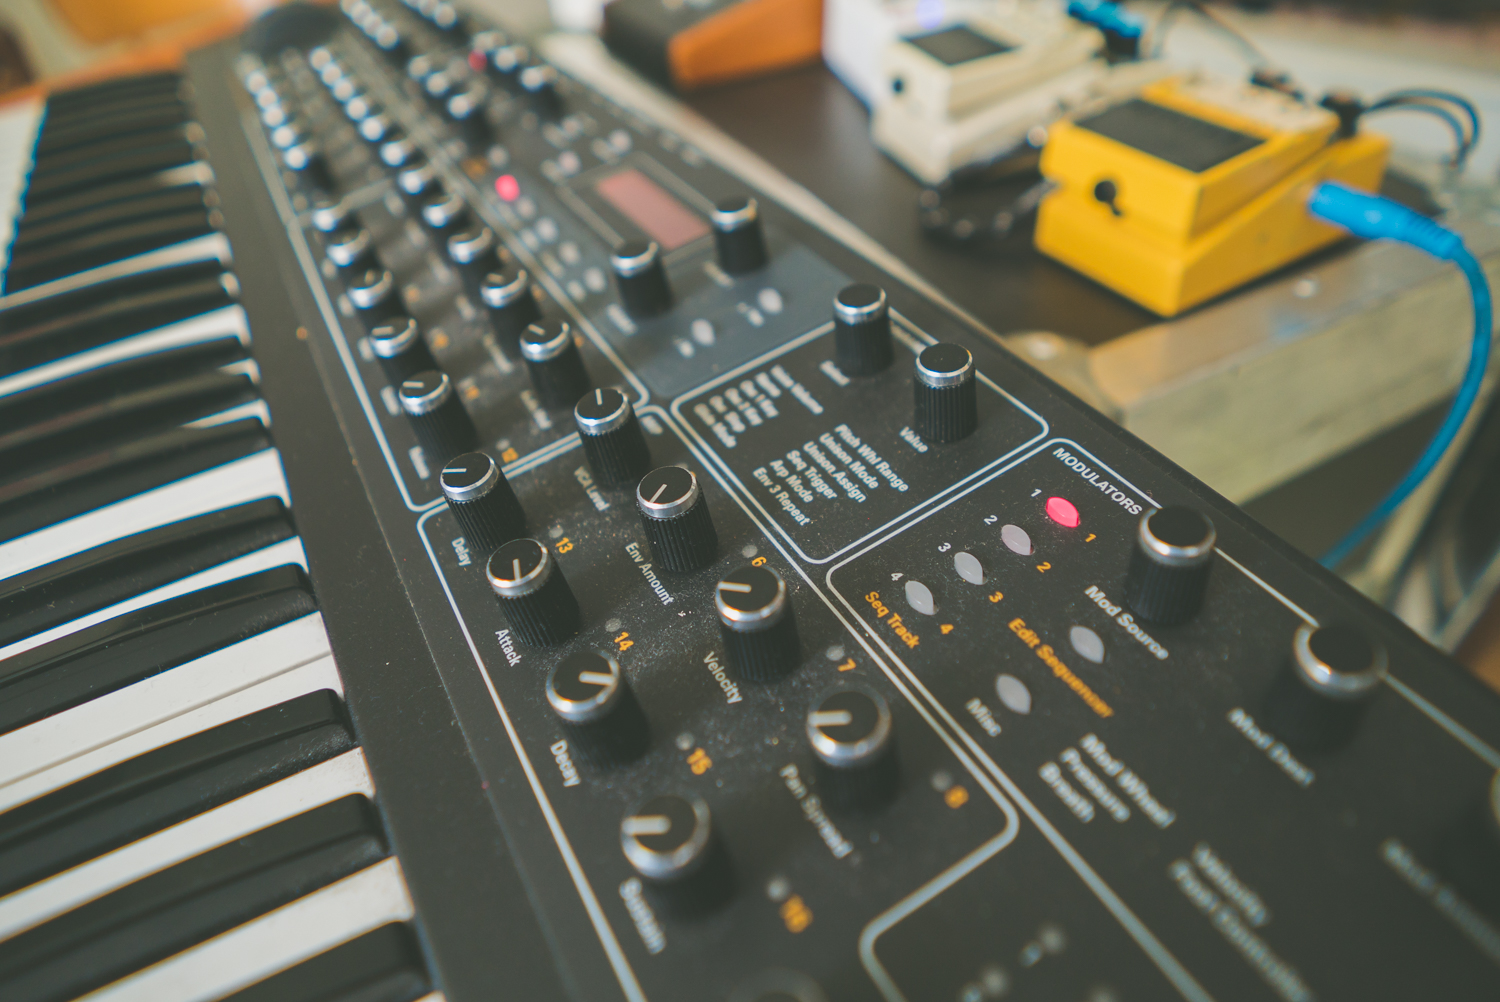 rival-consoles-by-pawel-ptak-08